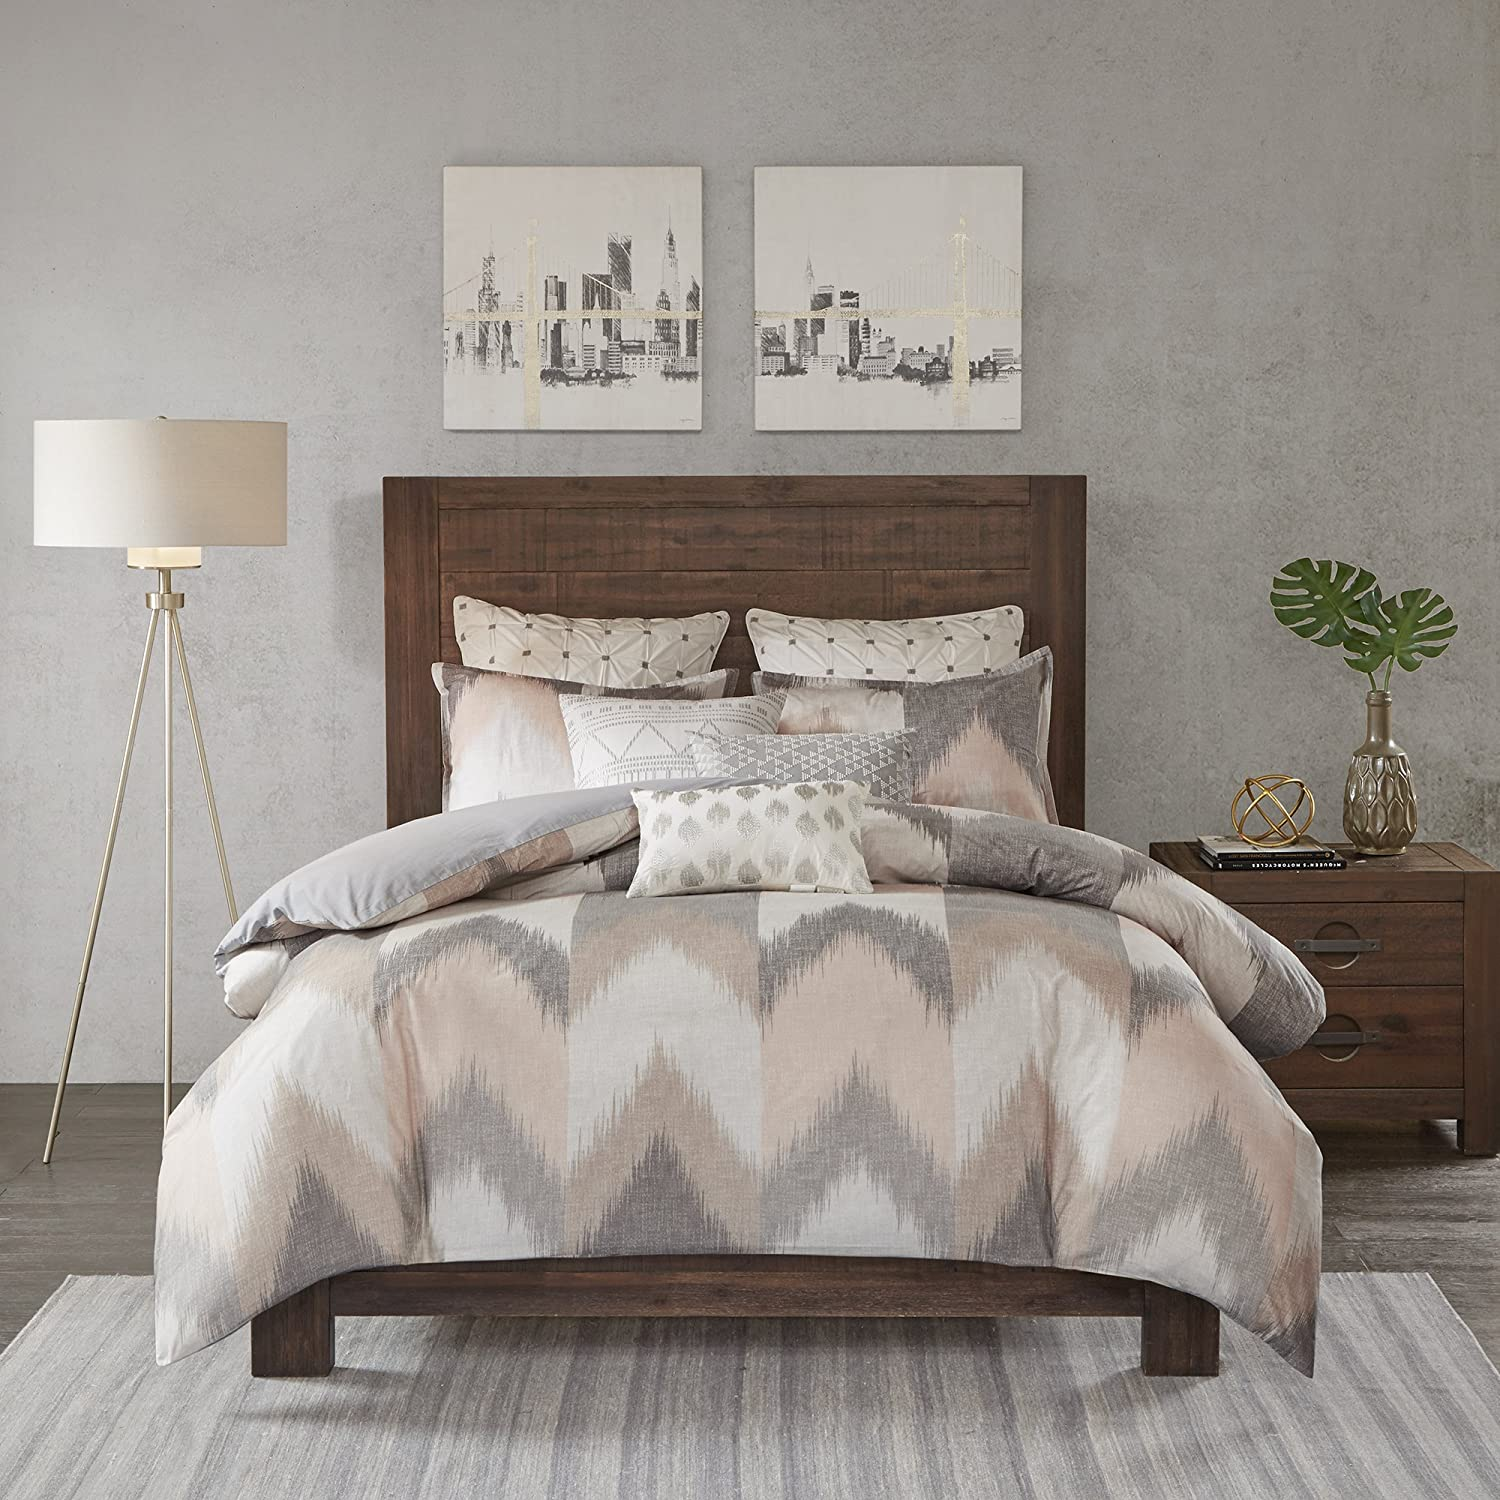 Ink+Ivy Alpine Duvet Cover Full/Queen Size - Blush, Grey, Ivory , Pieced Chevron Duvet Cover Set – 3 Piece – 100% Cotton Light Weight Bed Comforter Covers